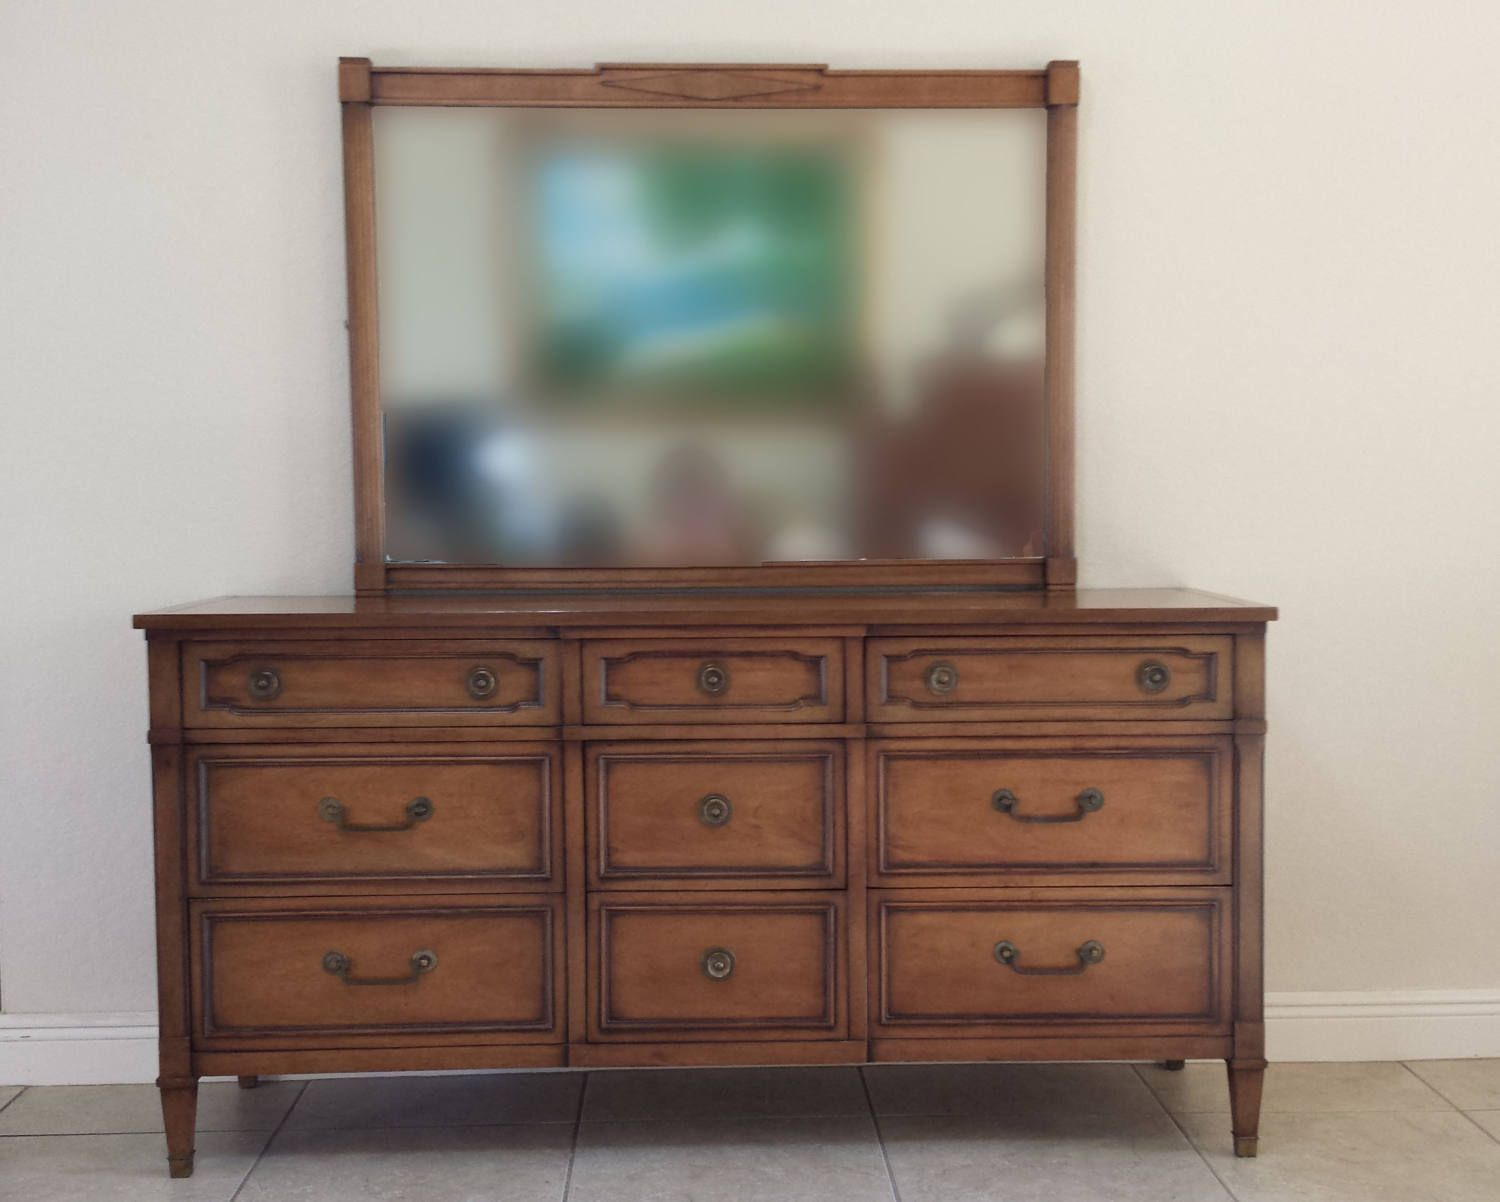 Drexel Truine Mahogany Dresser And Mirror By Degfurnituredesigns On Etsy